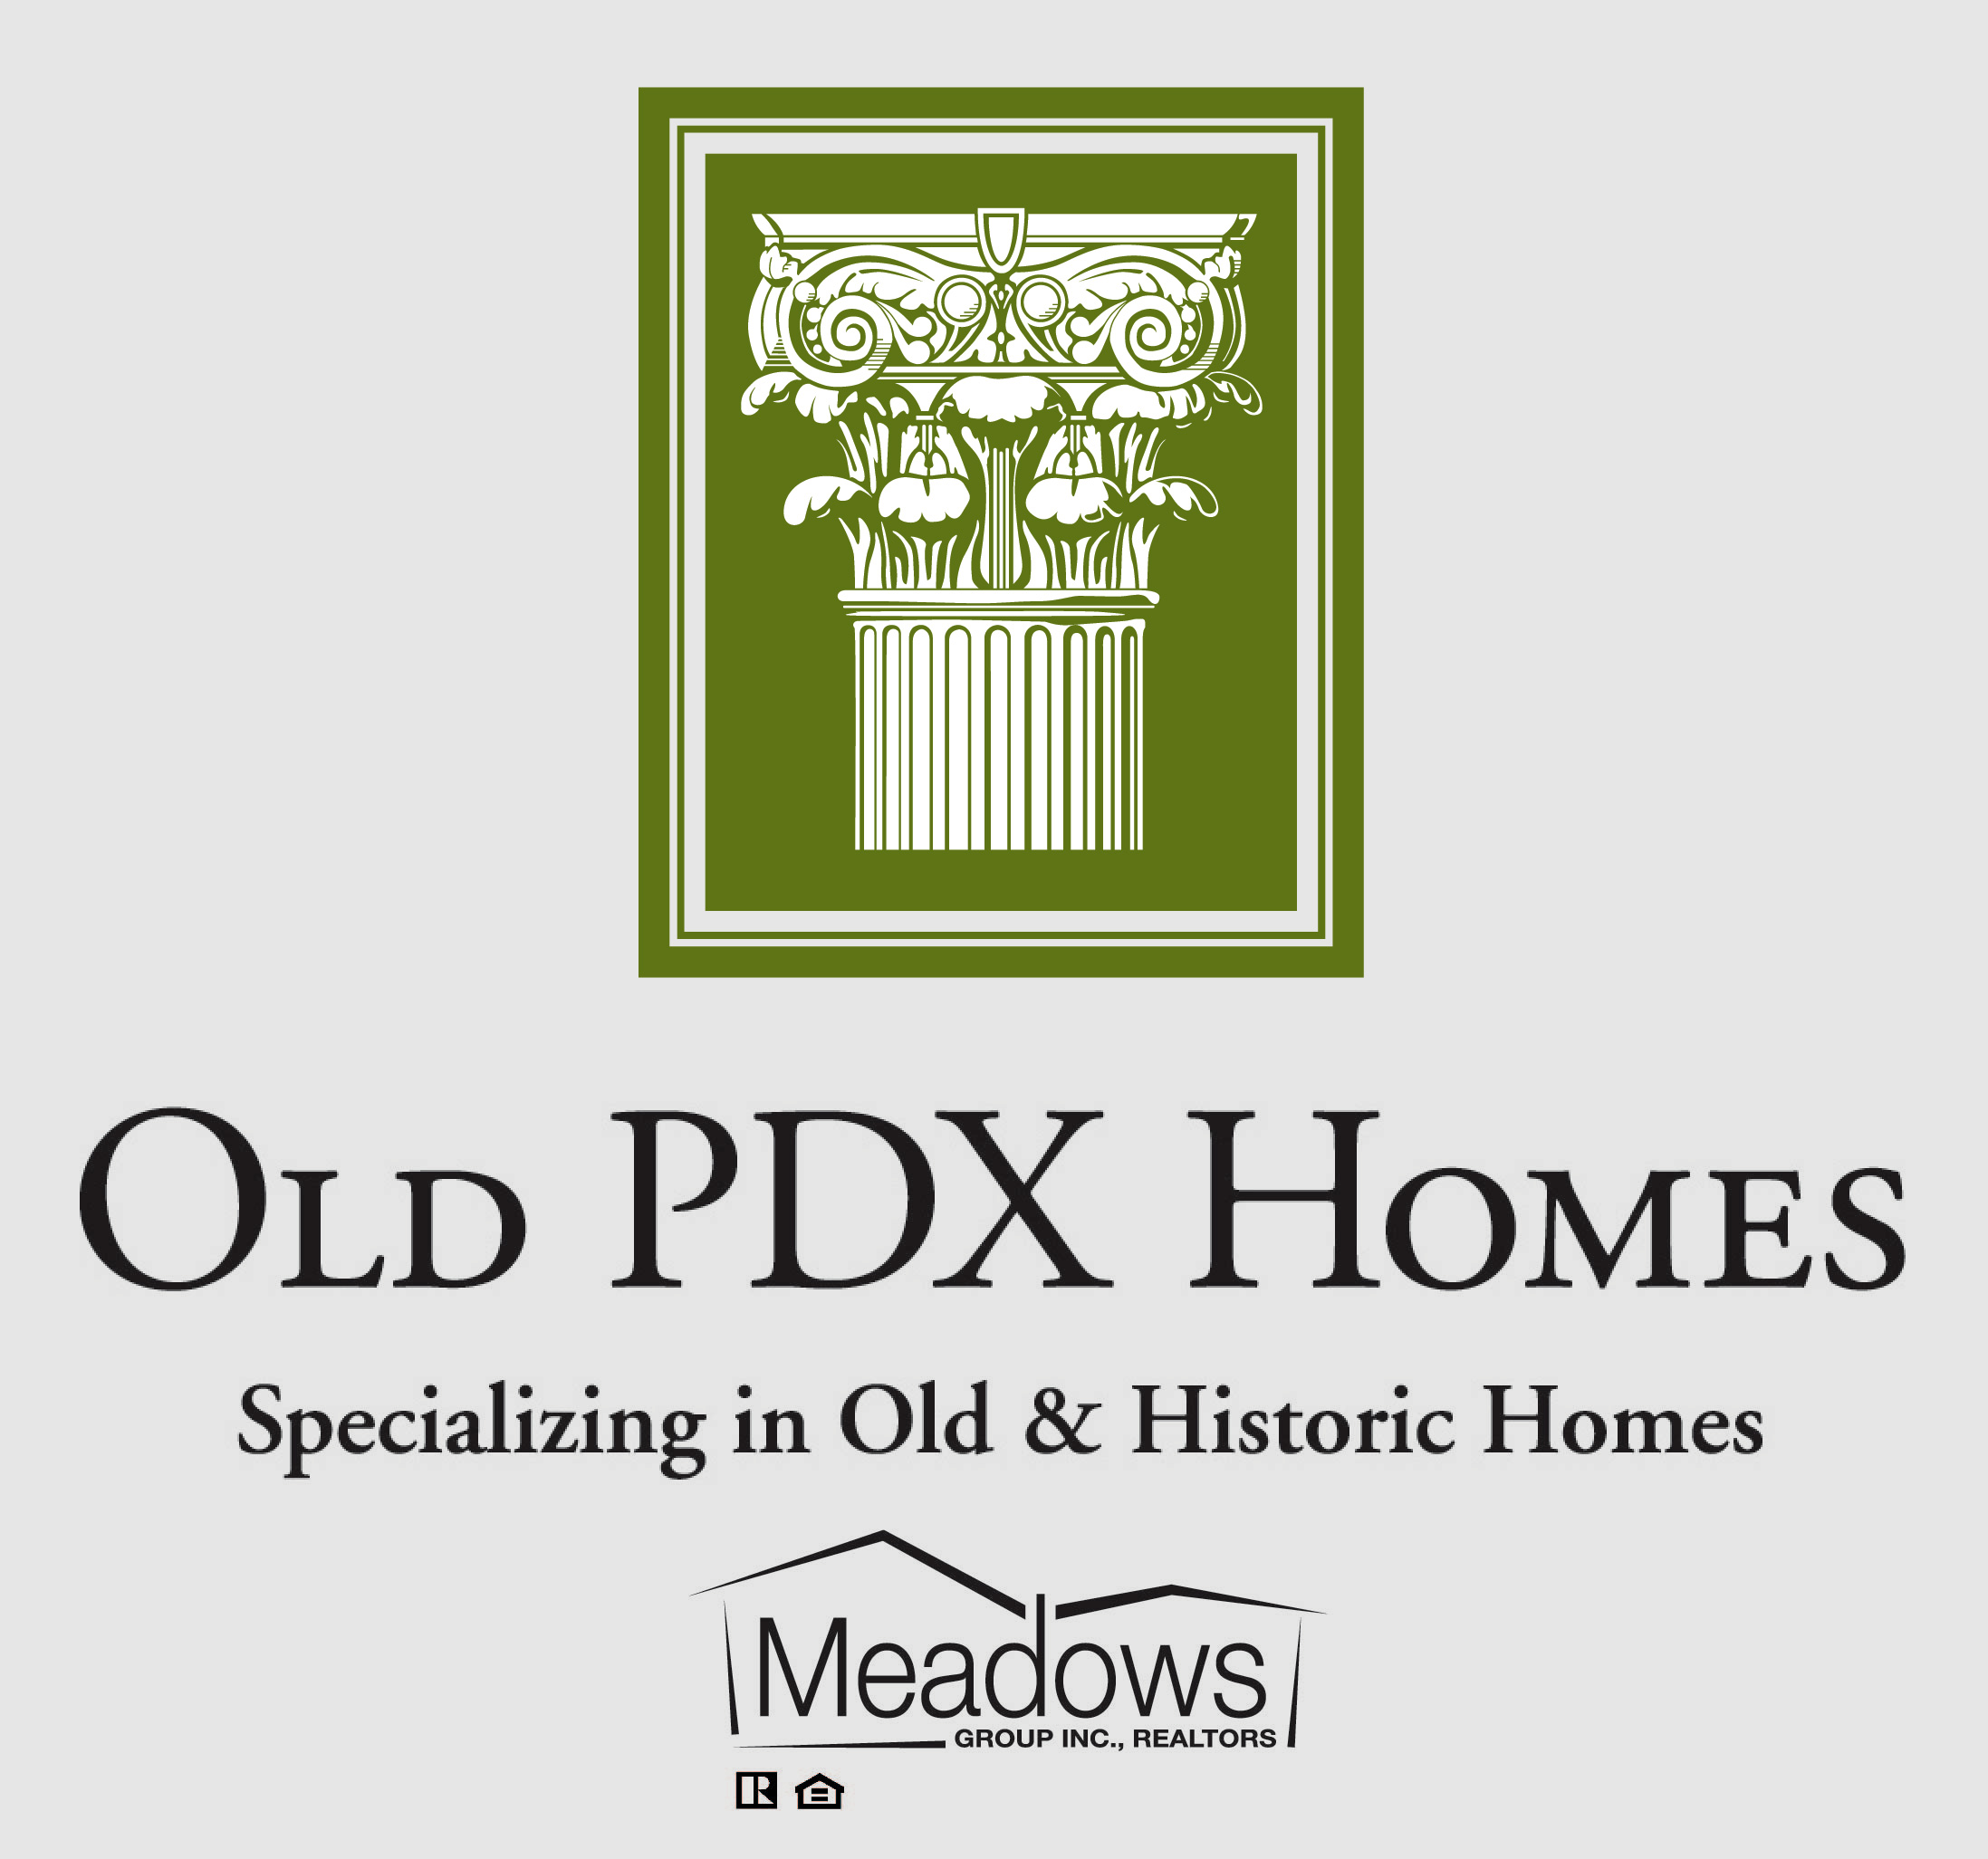 Old PDX Homes Logo Meadows Group Logo